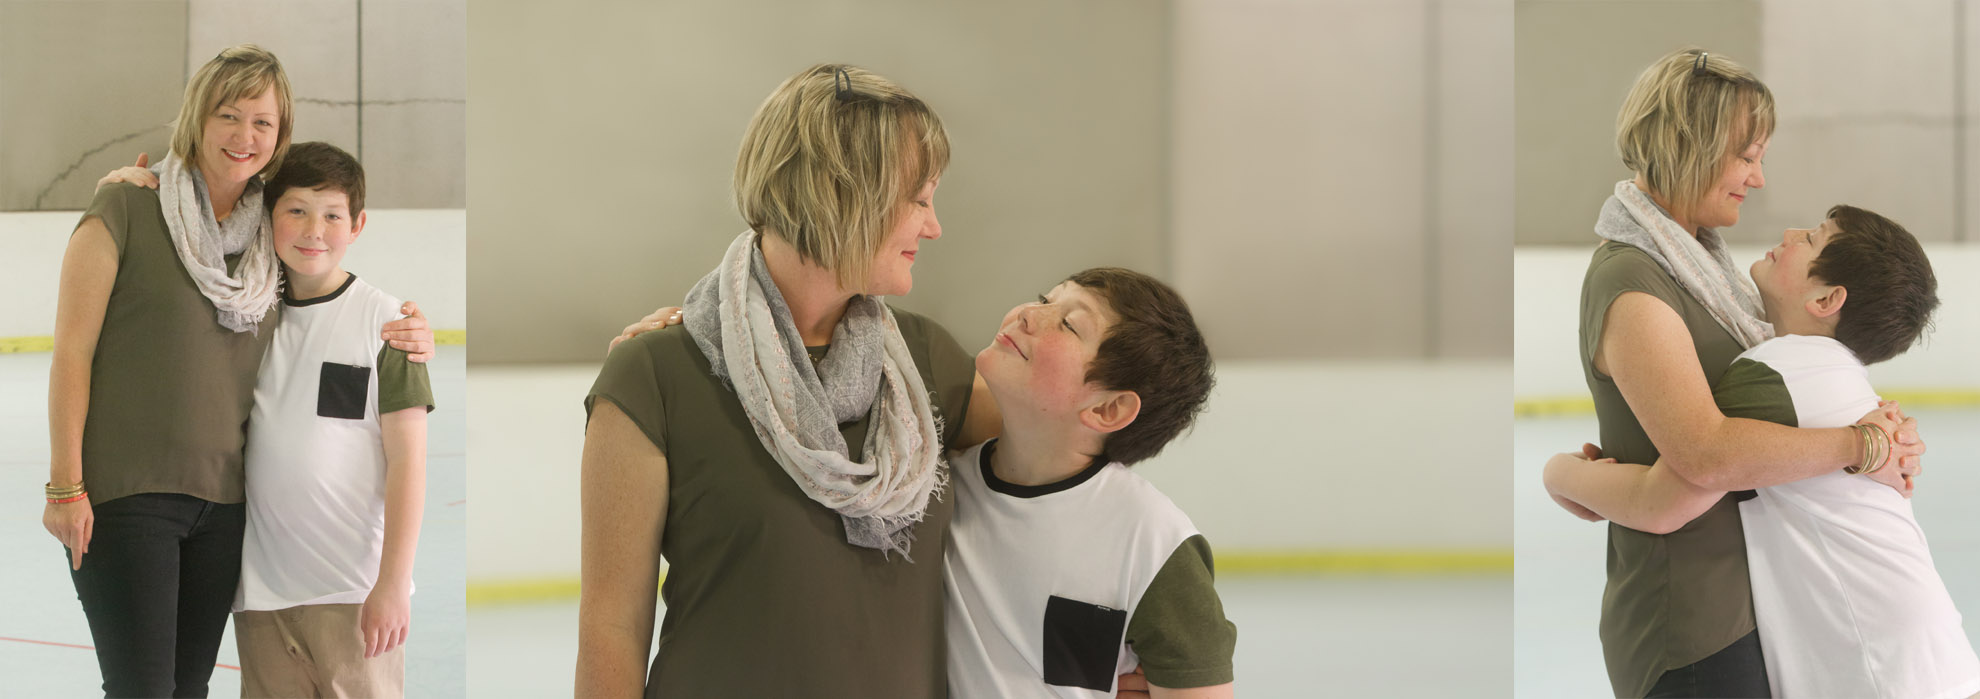 Hamilton-photographer-mother-and-son.jpg